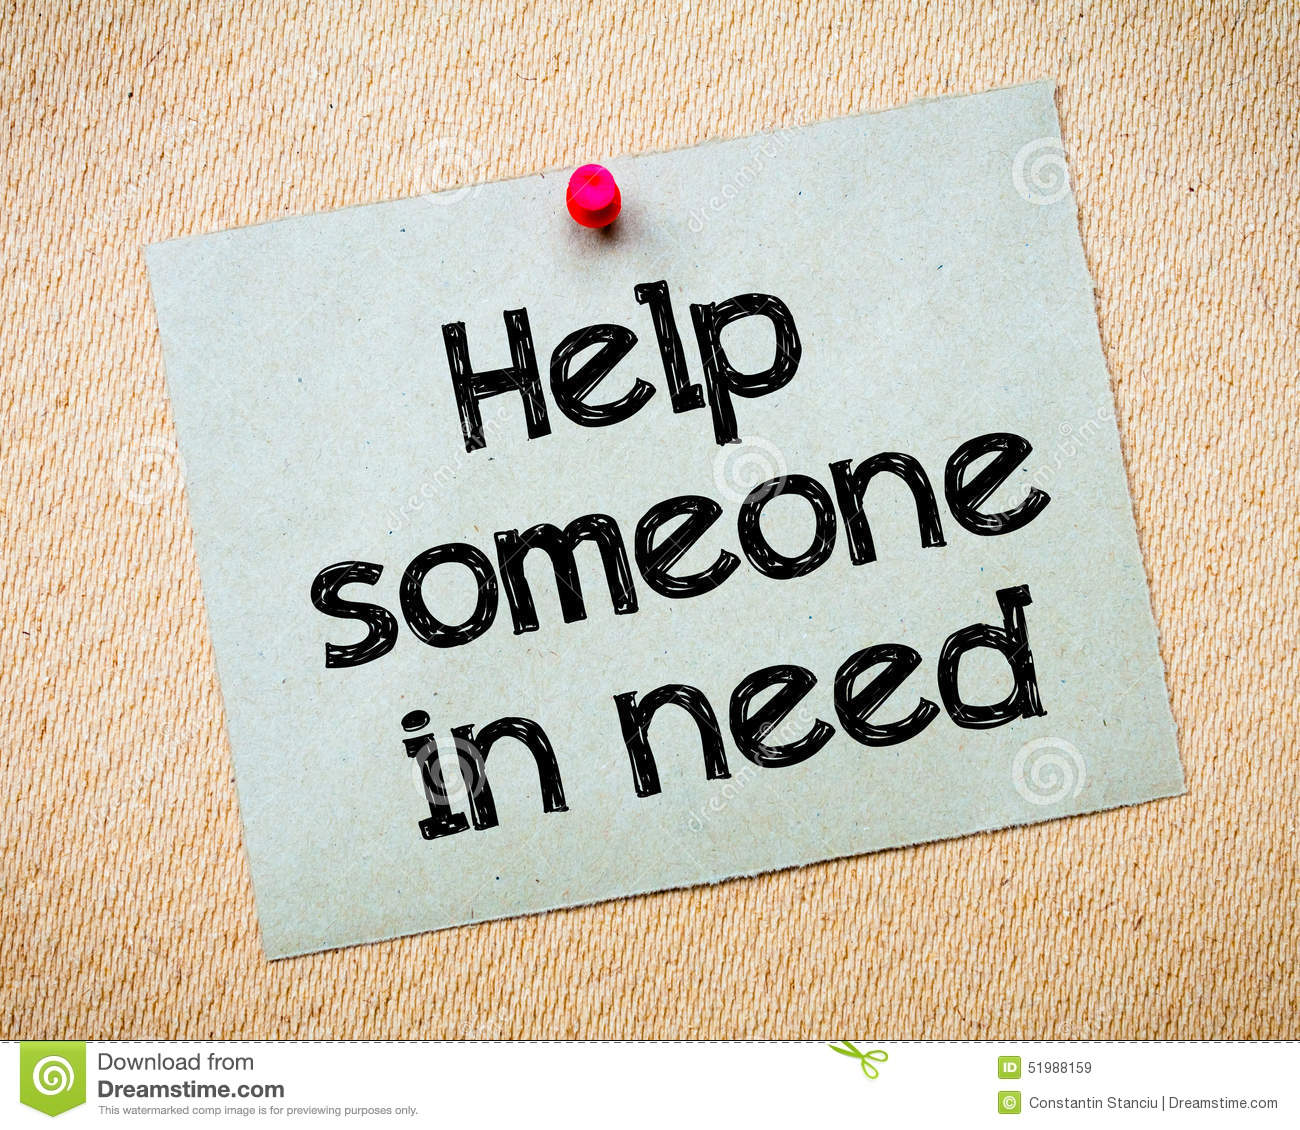 helping someone in need No matter what problems you're dealing with, whether or not you're thinking about suicide, if you need someone to lean on for emotional support, call the lifeline people call to talk about lots of things: substance abuse, economic worries, relationships, sexual identity, getting over abuse, depression, mental and physical illness, and loneliness, to name a few.